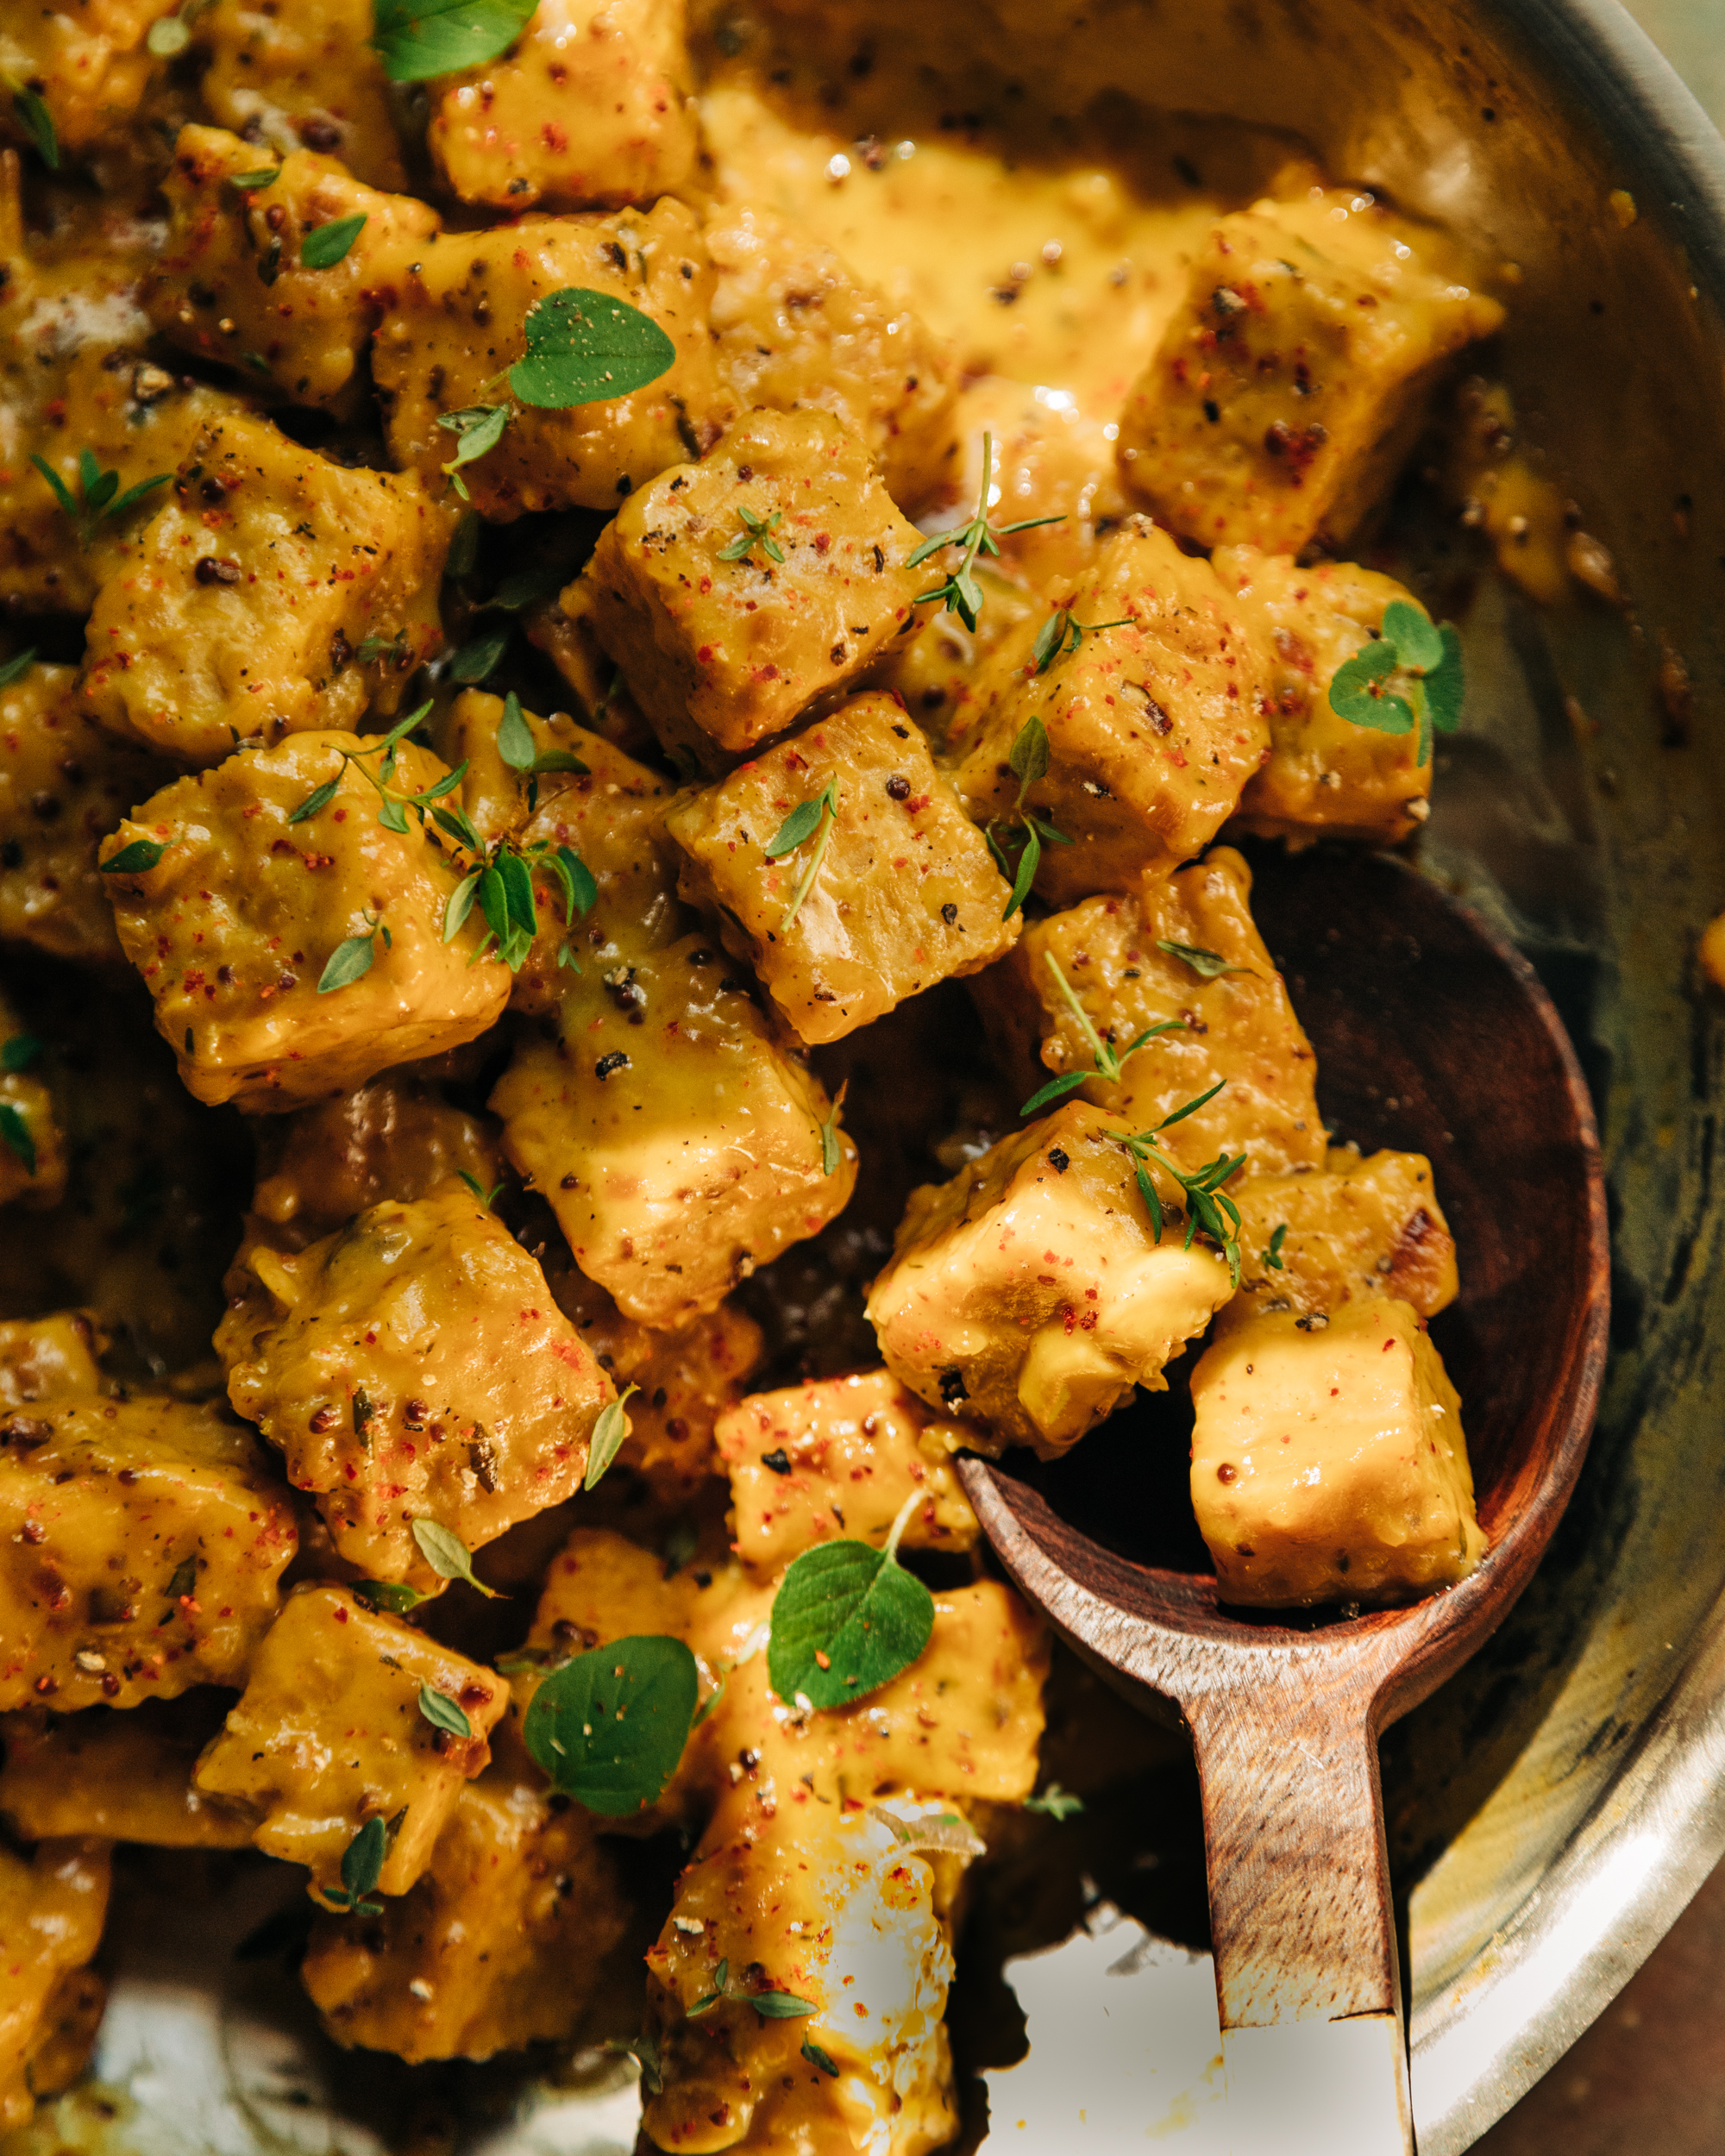 An overhead shot of saucy chunks of maple mustard tempeh tempeh in a skillet. The sauce is golden yellow and the tempeh is garnished with fresh thyme and oregano leaves.